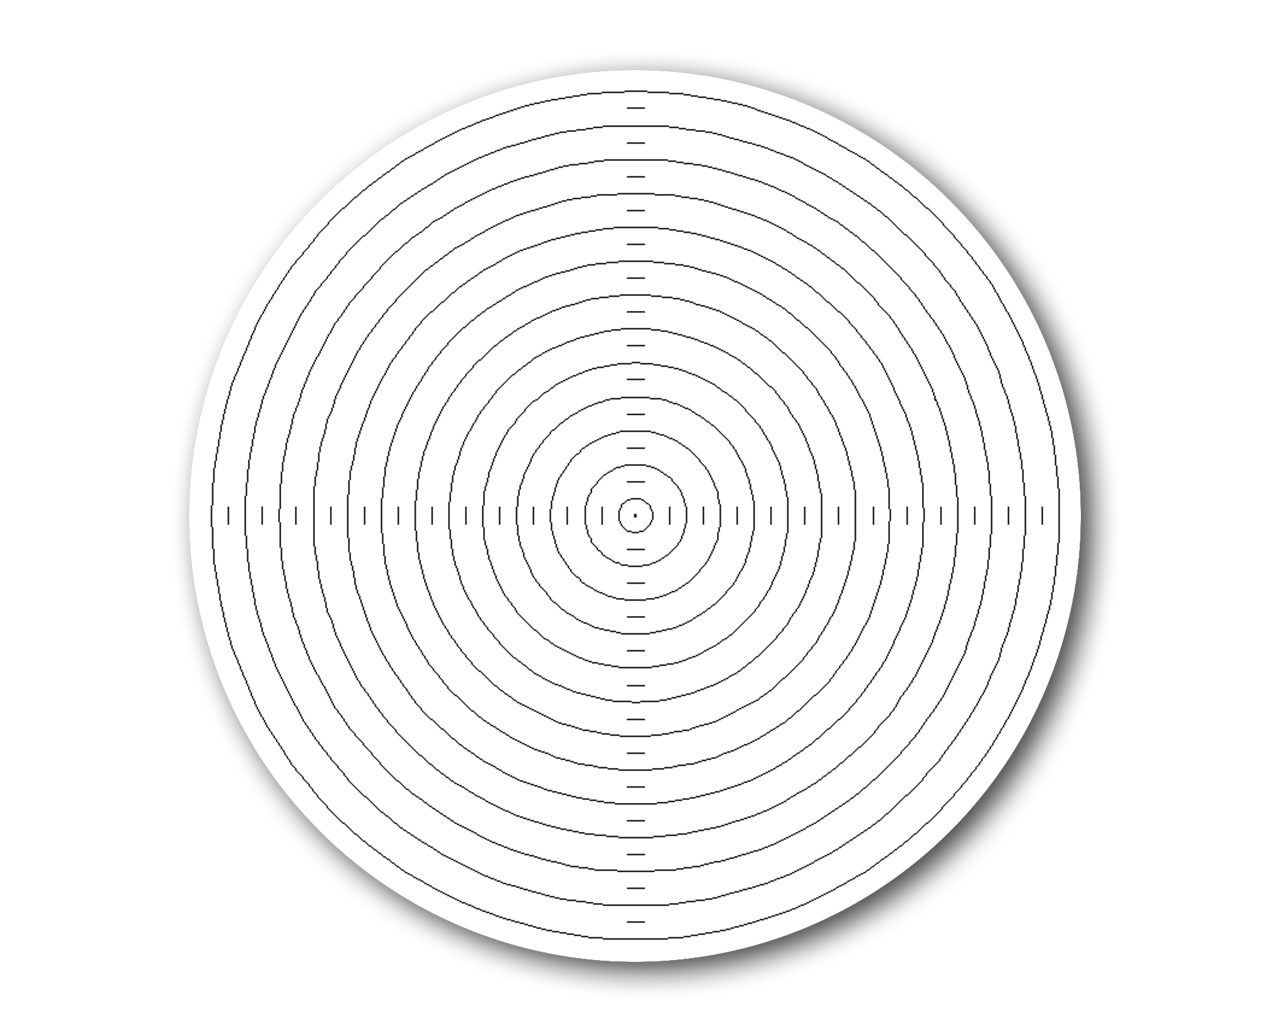 Zoe Strauss: Concentric Circles